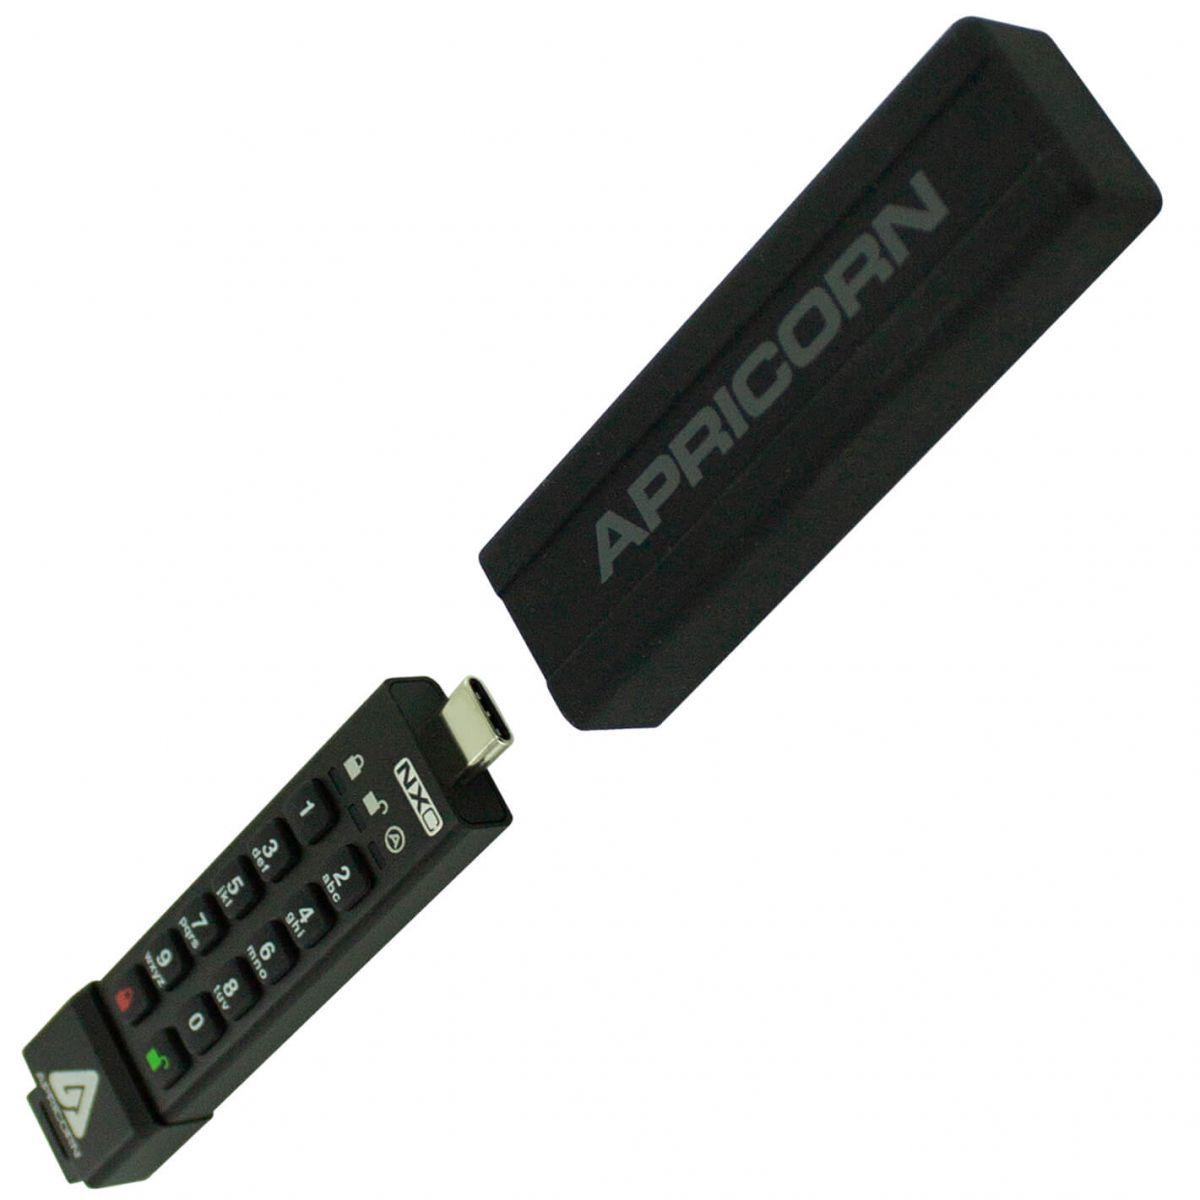 ask3nxc 32gb usbstick with usbc